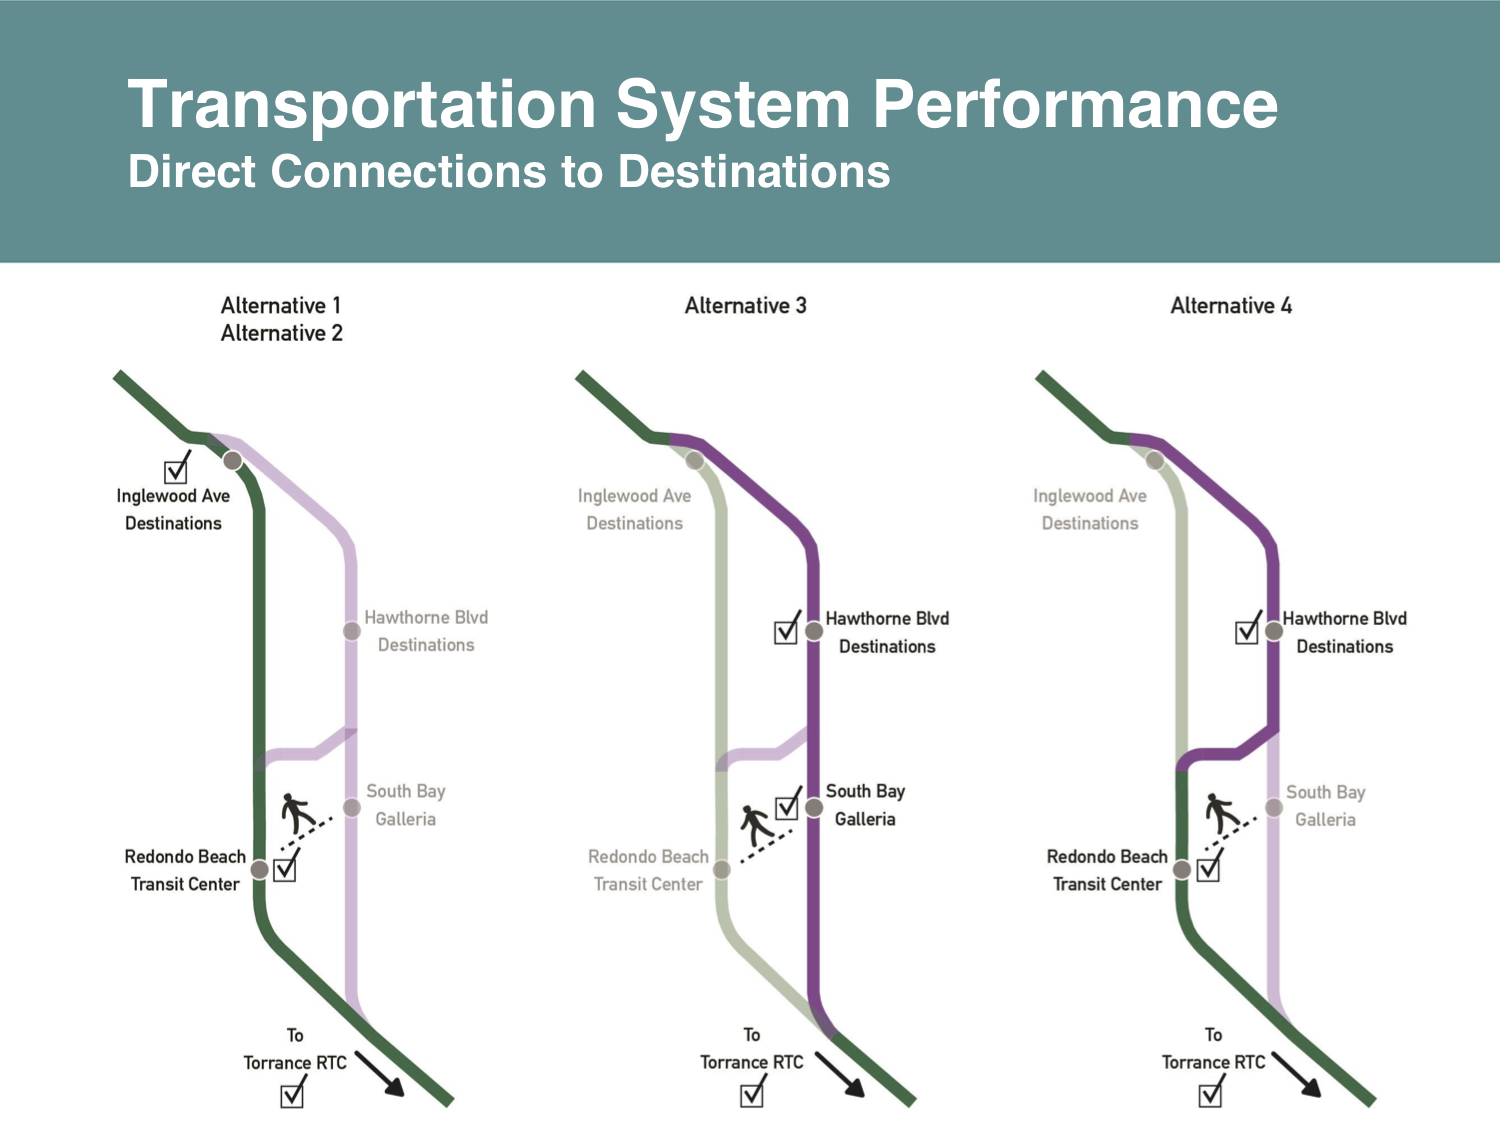 Update on Green Line South Bay extension to Torrance - The Source